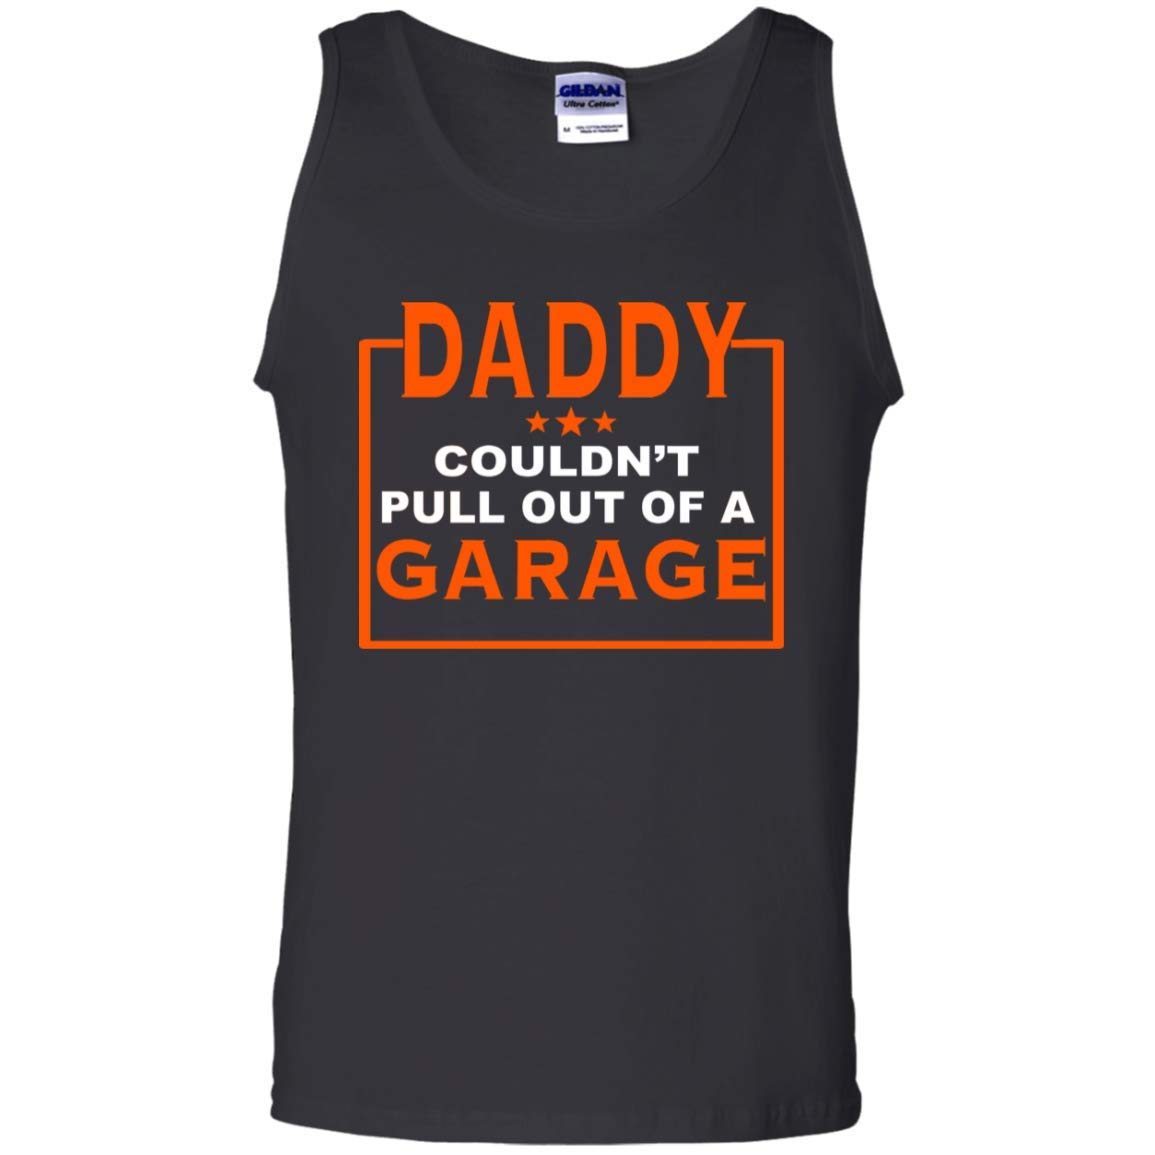 Teely Shop Mens Daddy Couldnt Pull Out of A Garage:G220 Gildan 100/% Cotton Tank Top